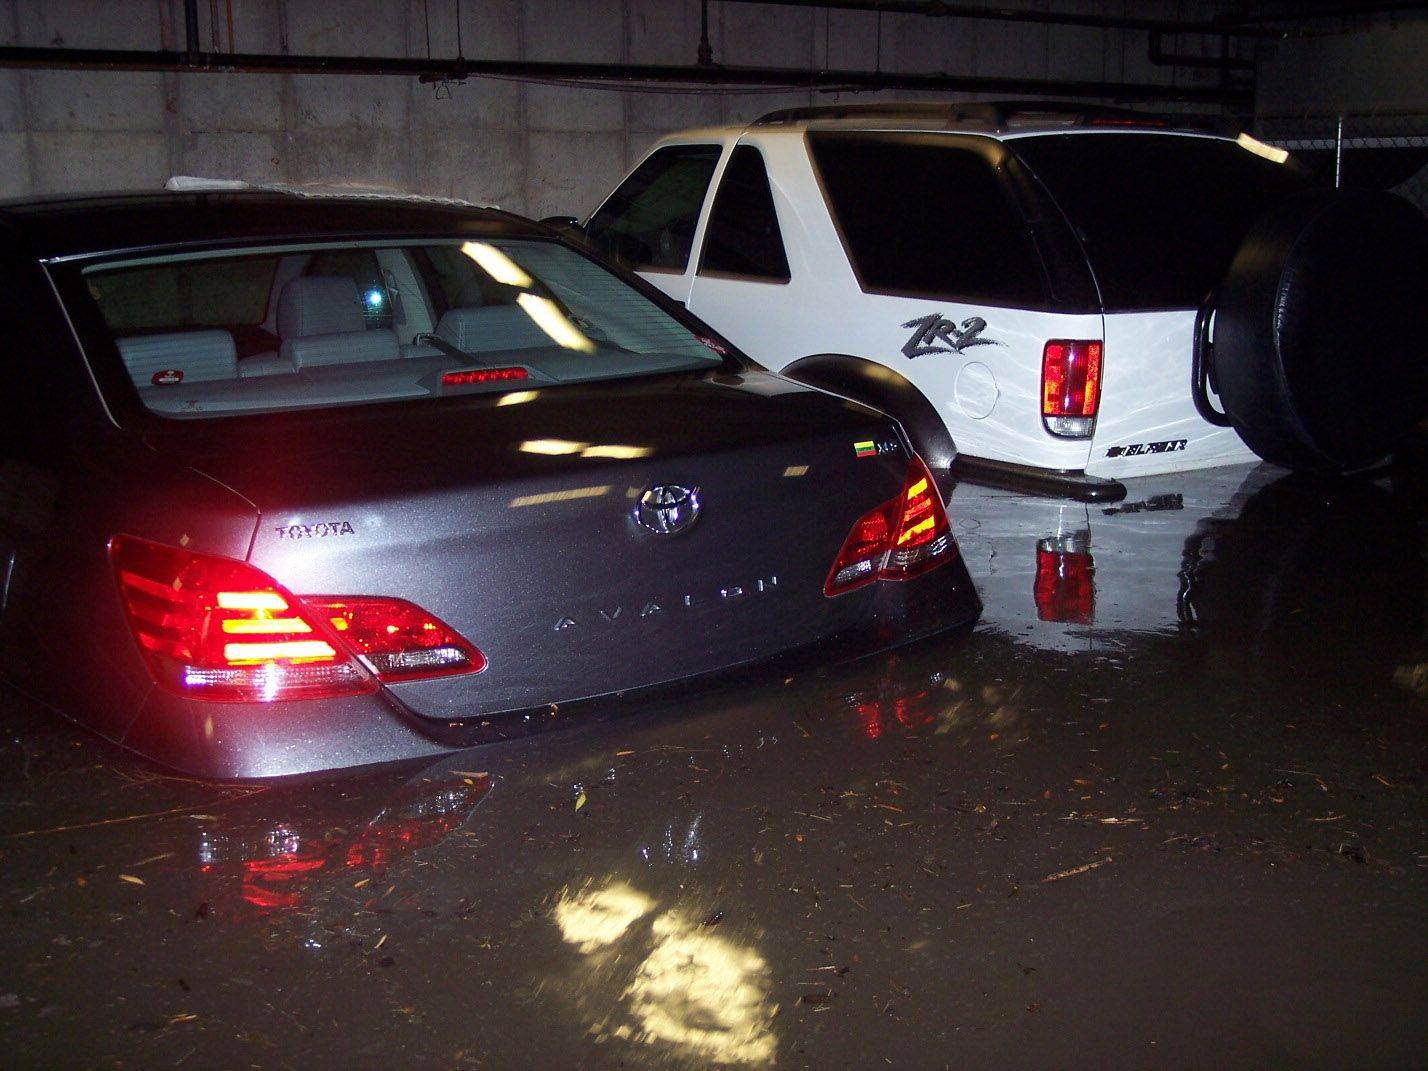 Eric Kinkel of Palatine took this picture of his white SUV and another car submerged in water in the garage of his condo building. Forty plus cars were damaged by the 3 to 4 feet of water, according to Kinkel.